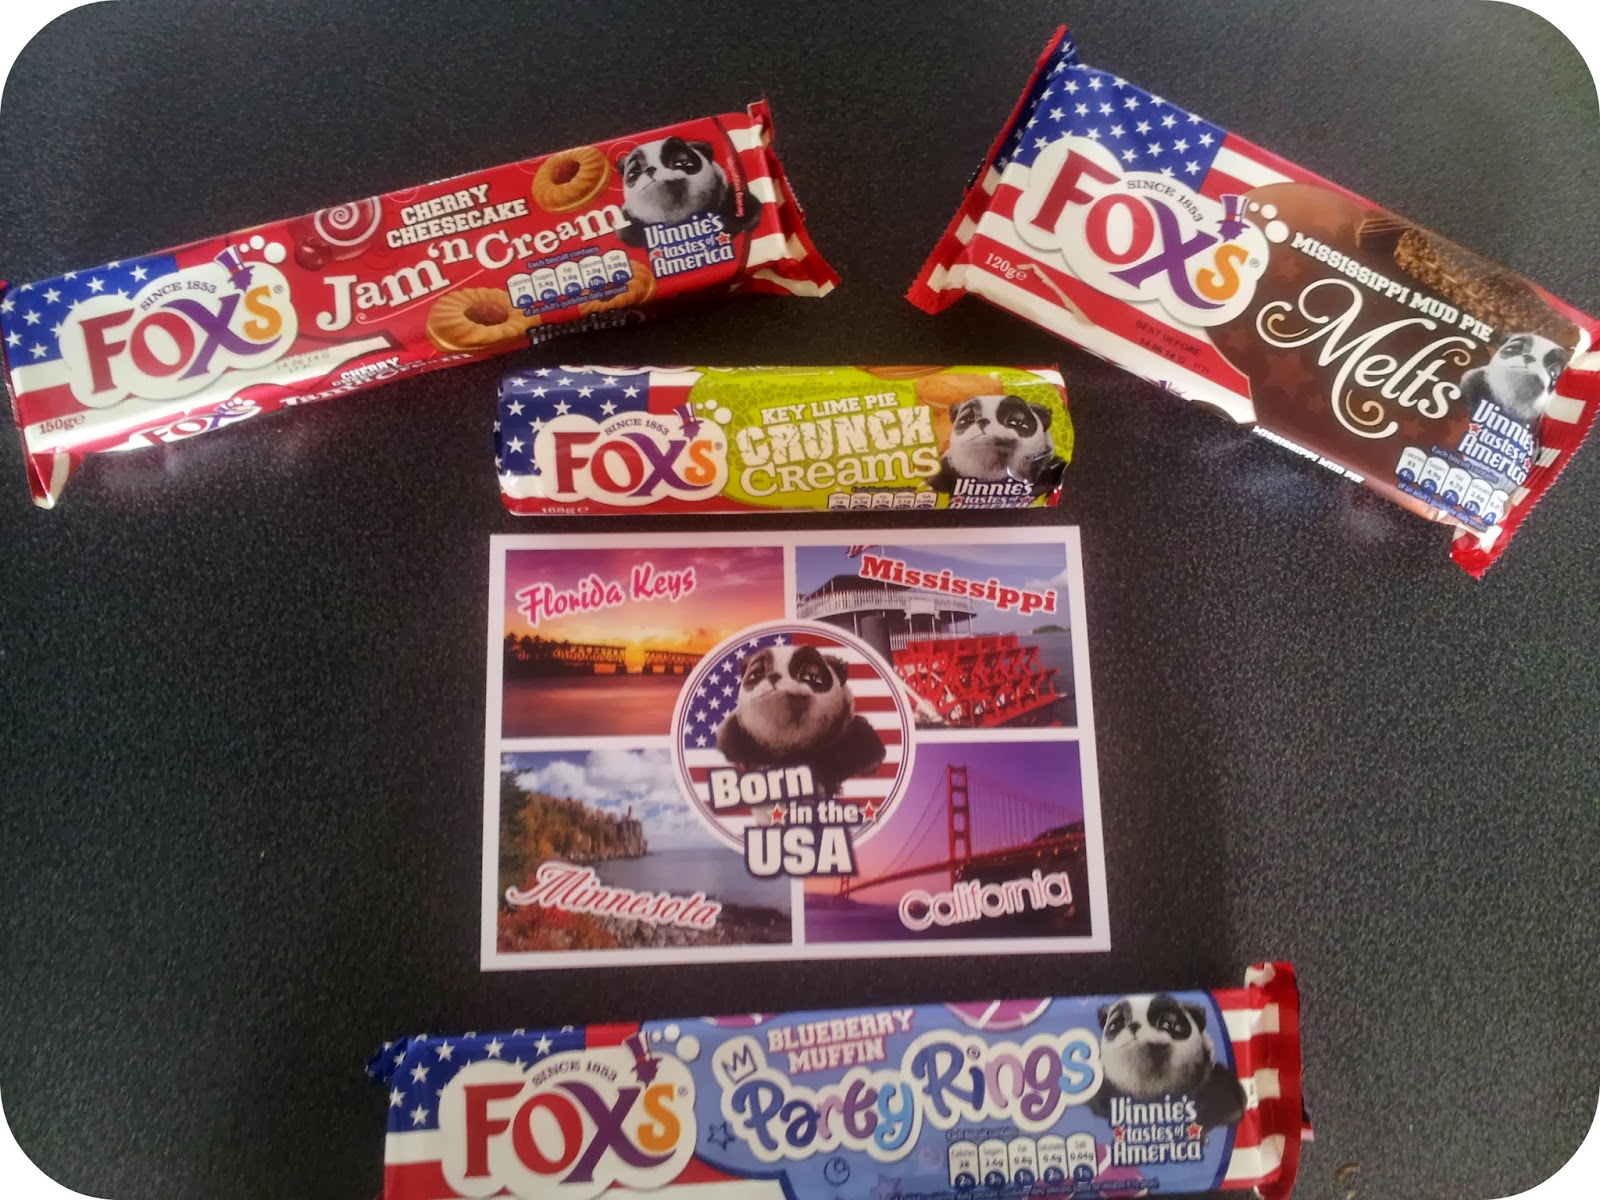 Foxs Biscuits Taste of America, My Mummys World